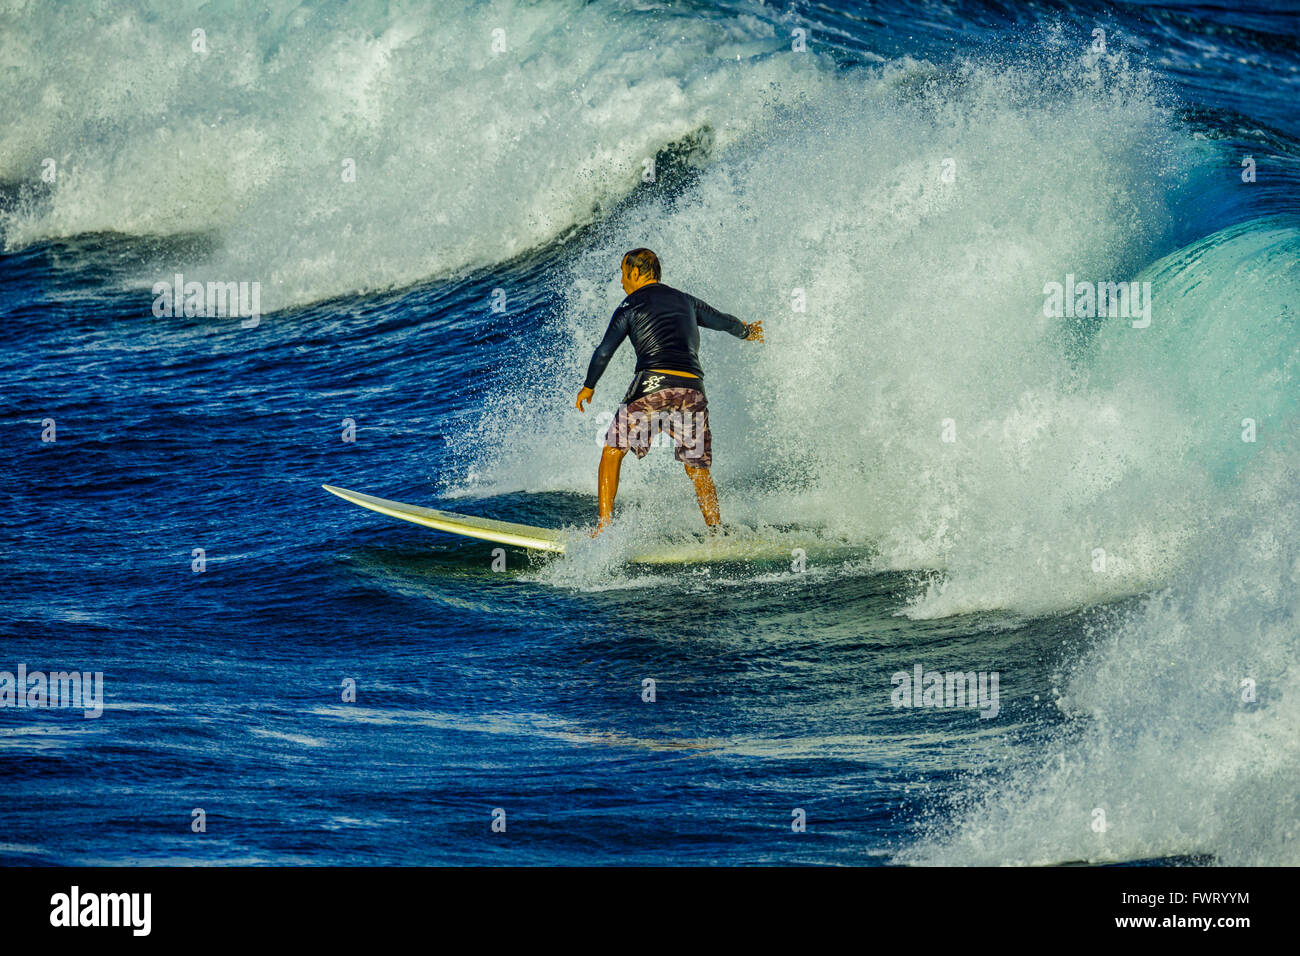 Surfing in Maui - Stock Image